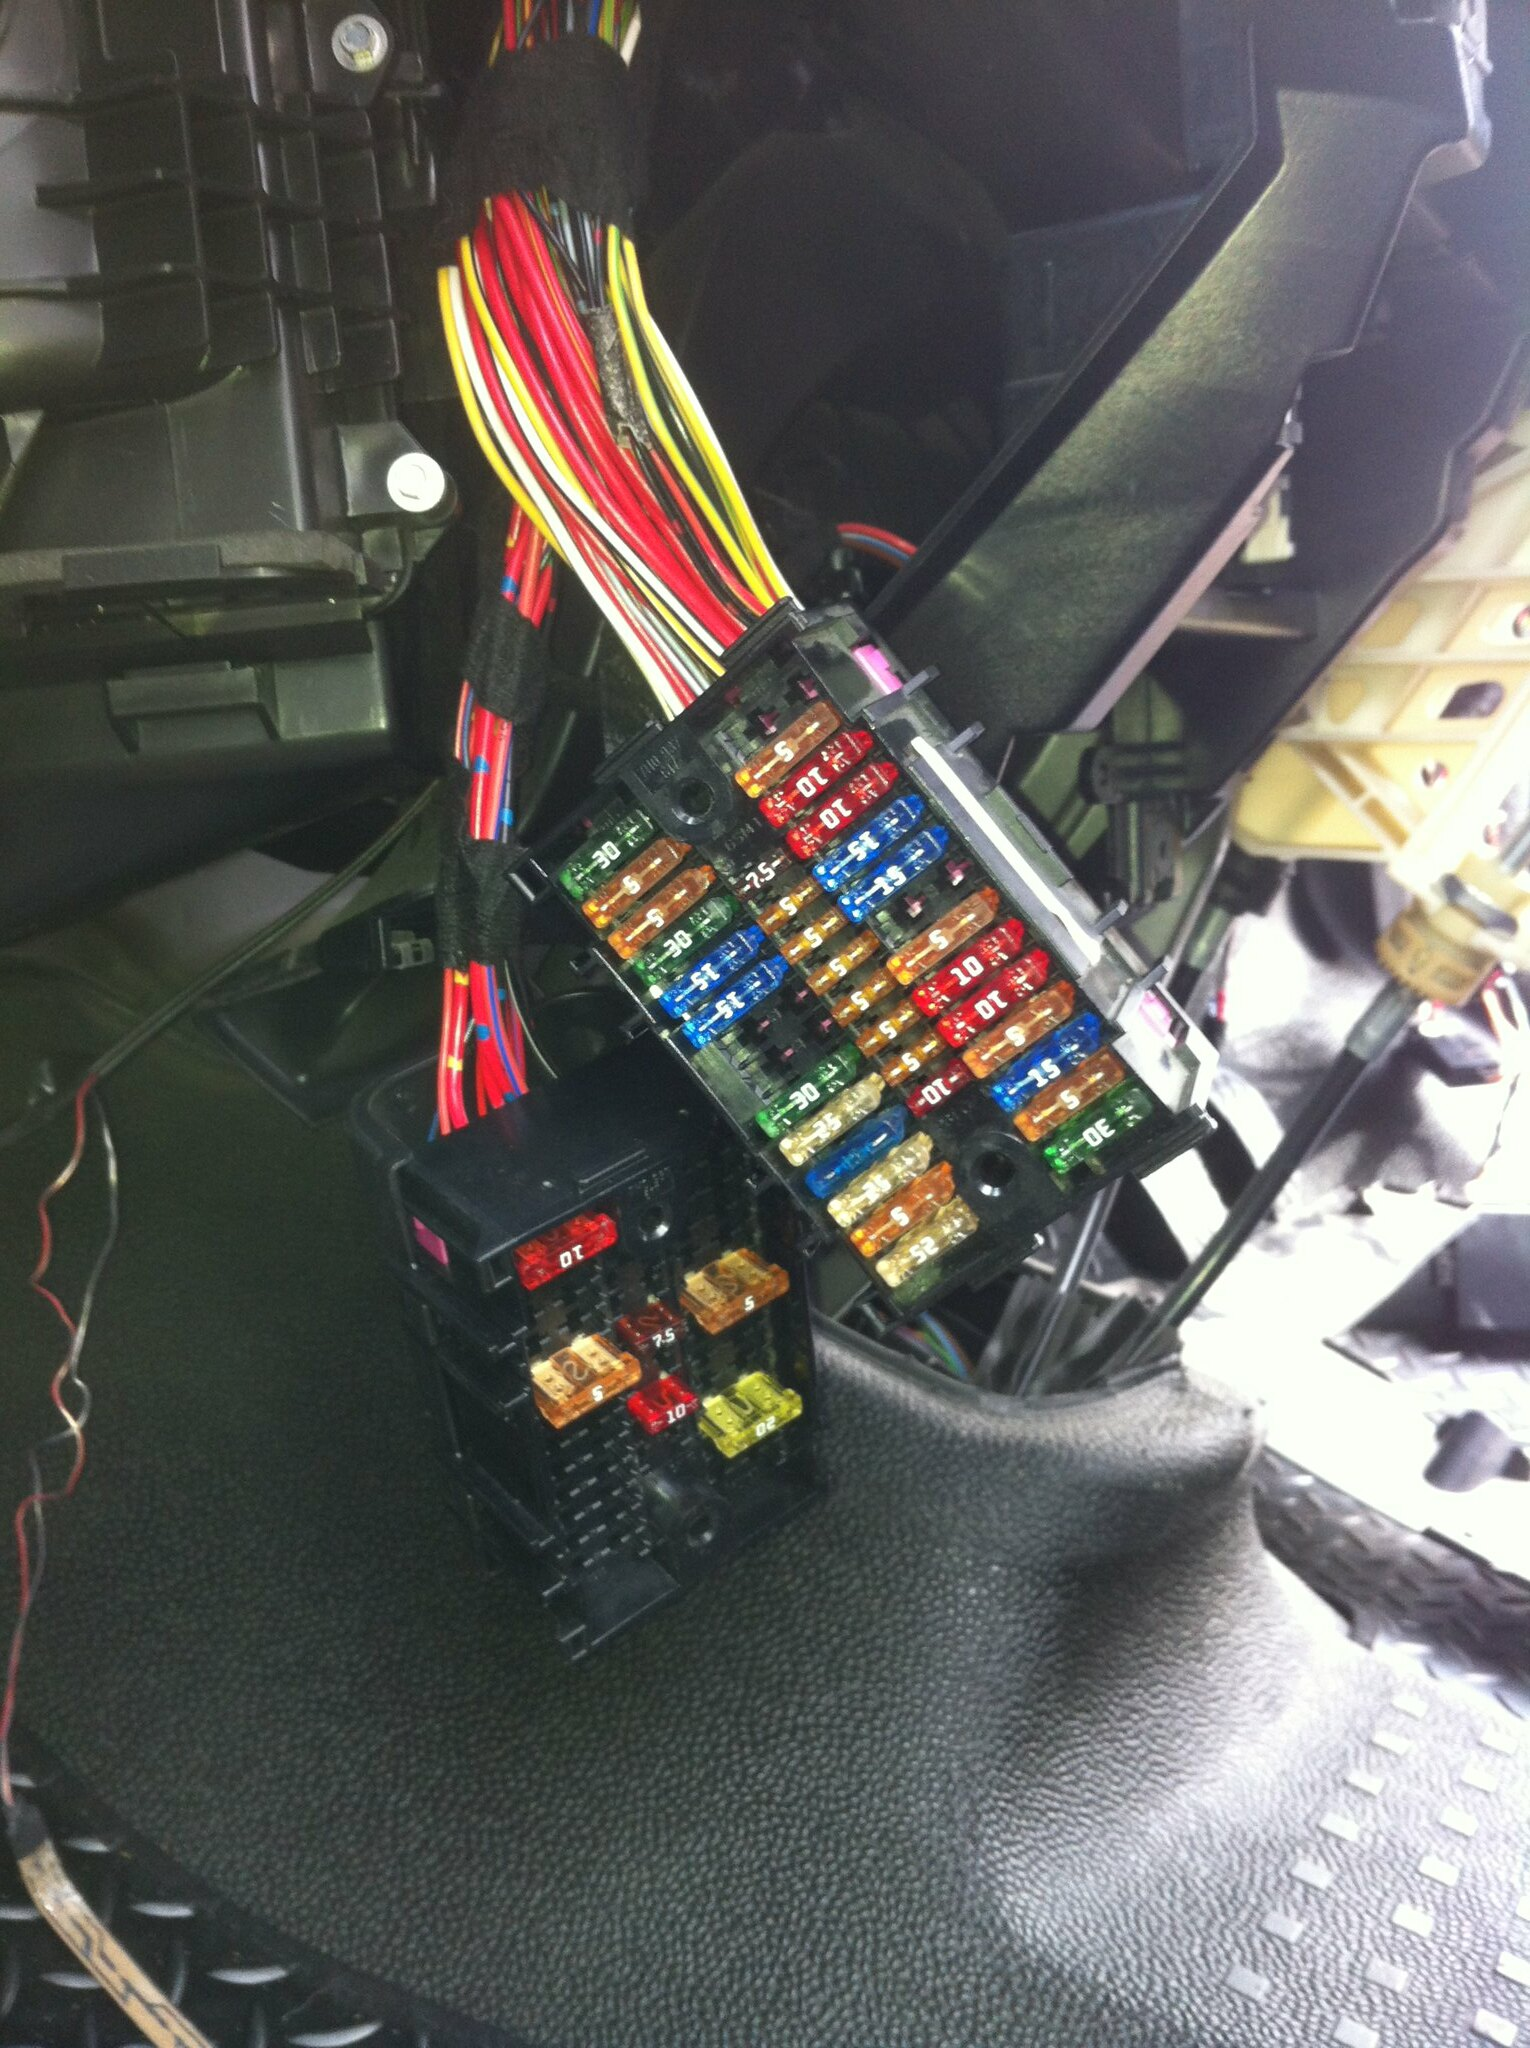 Vw Transporter Fuse Box Cigarette Lighter Trusted Wiring Diagrams 2007 Ford Fusion Ignition And Keyed Feed On T5 T4 Forum Junction